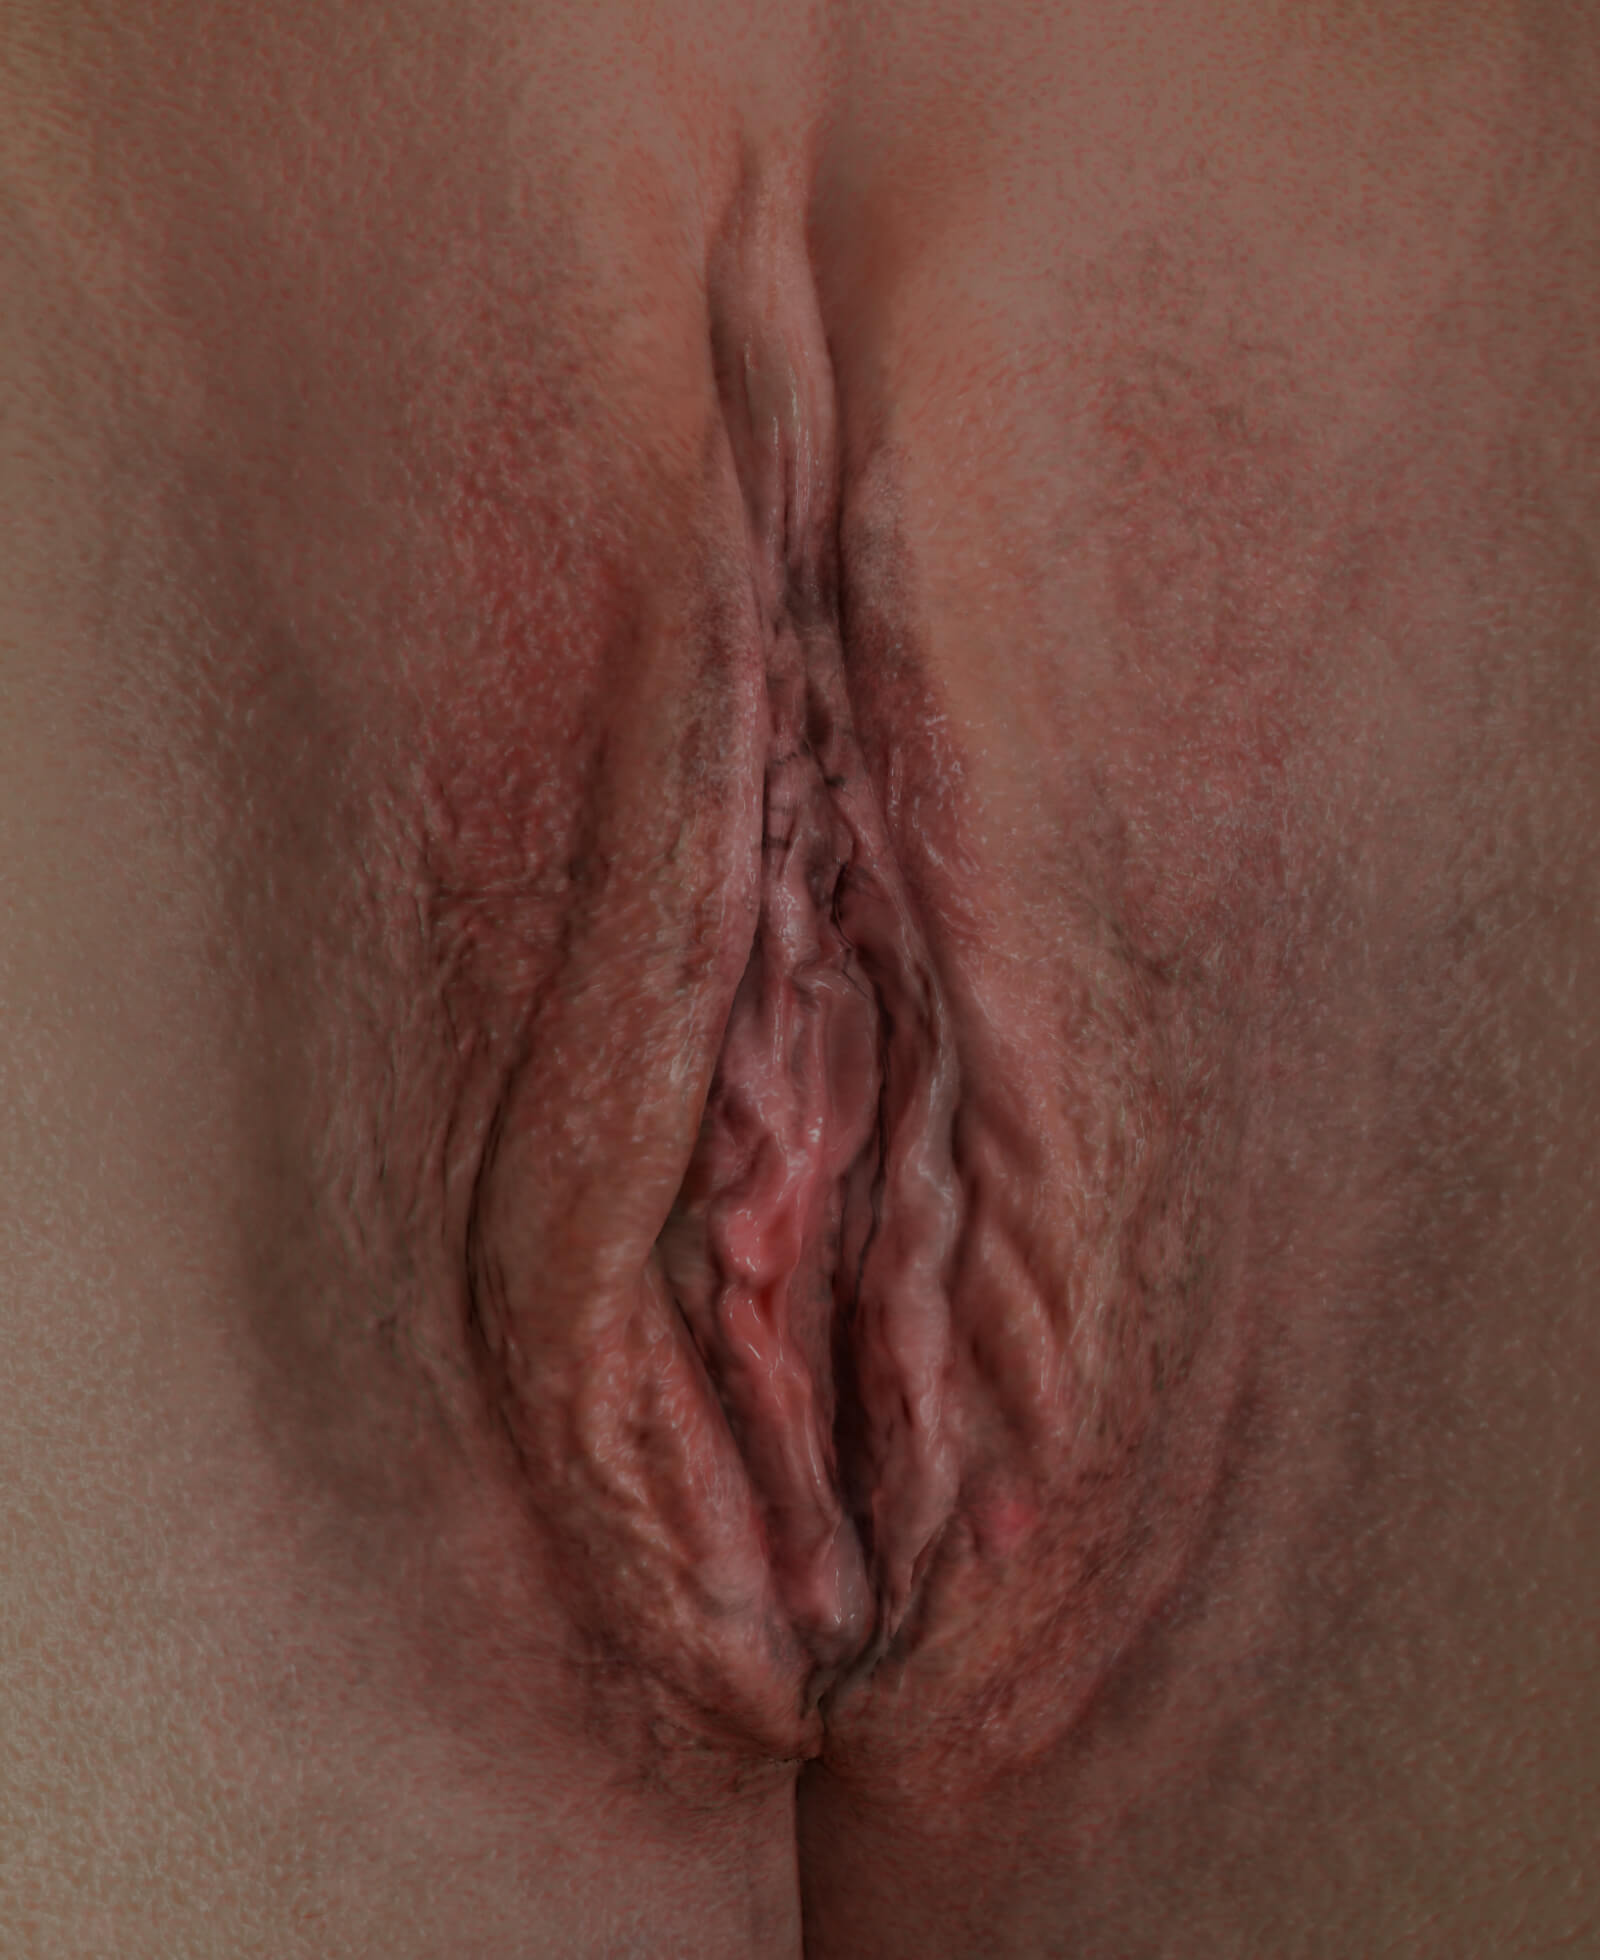 Clinique Chloé female patient's vulva showing signs of vaginal relaxation